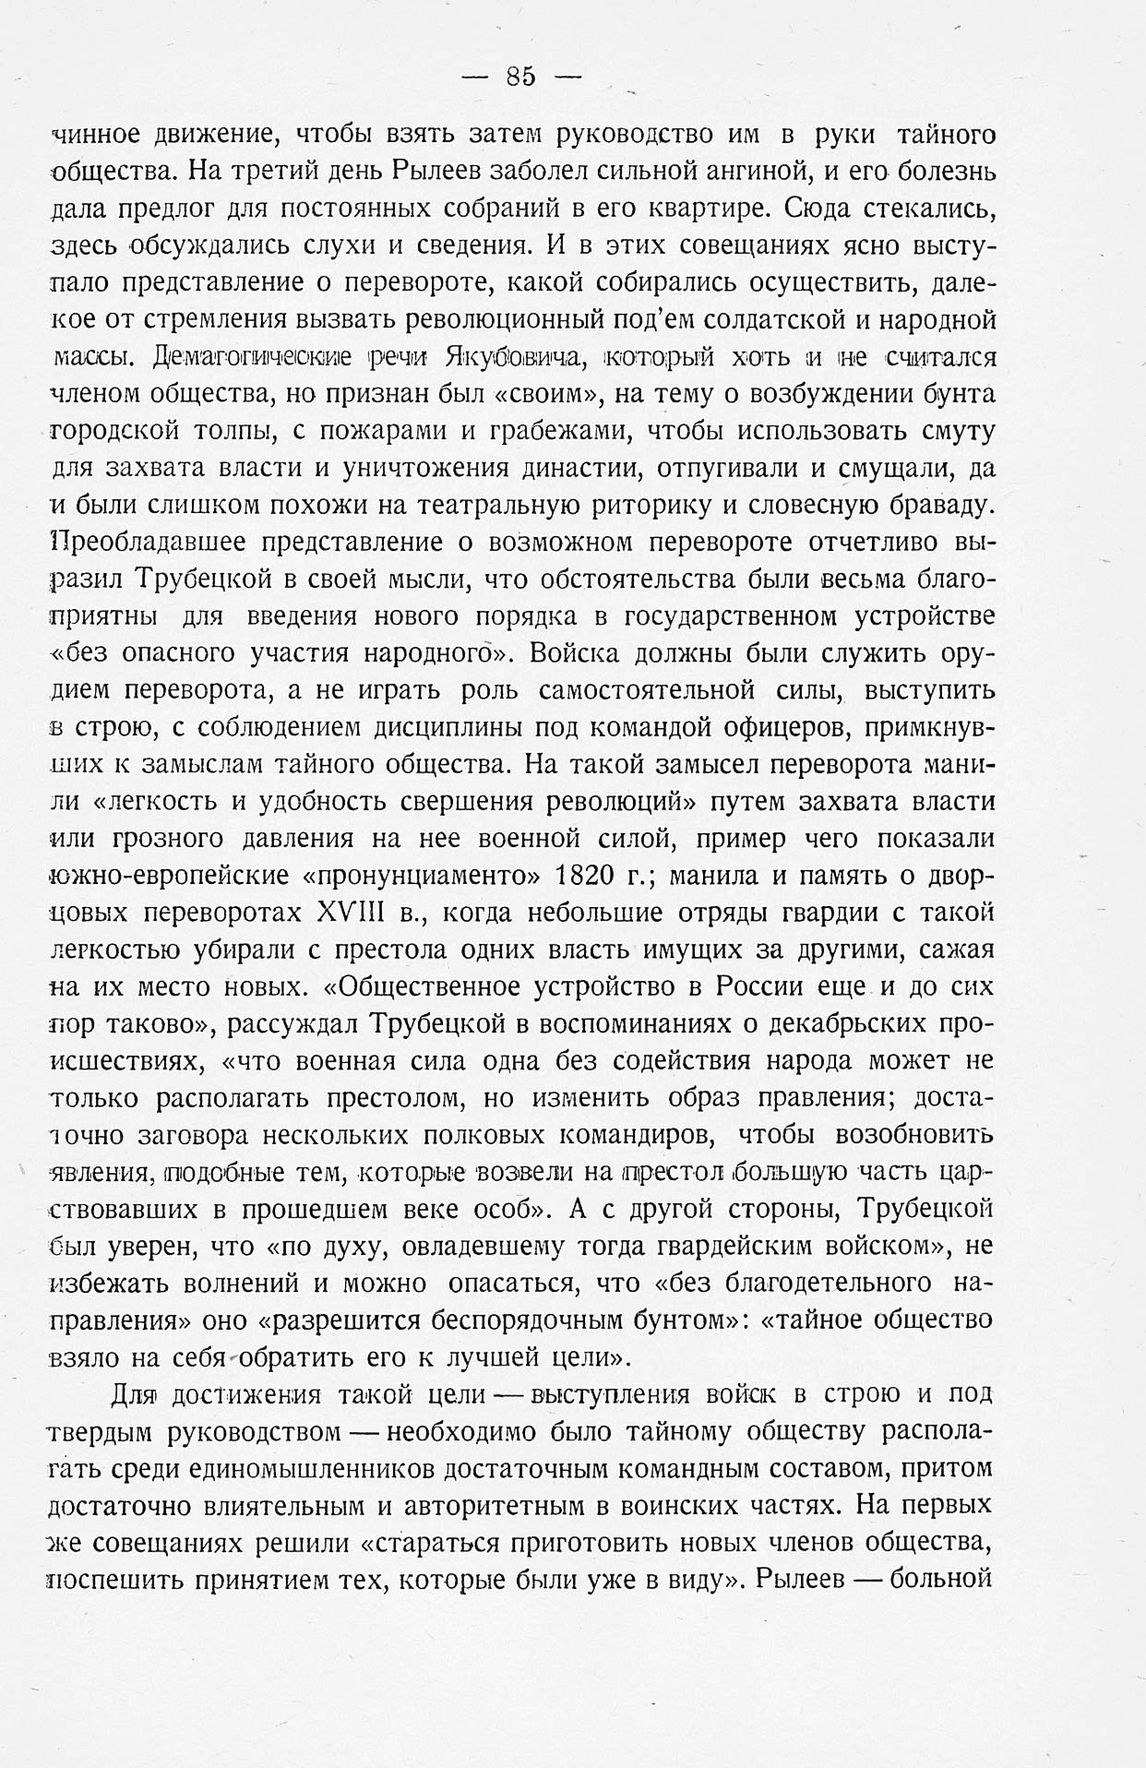 http://elib.shpl.ru/pages/565982/zooms/7